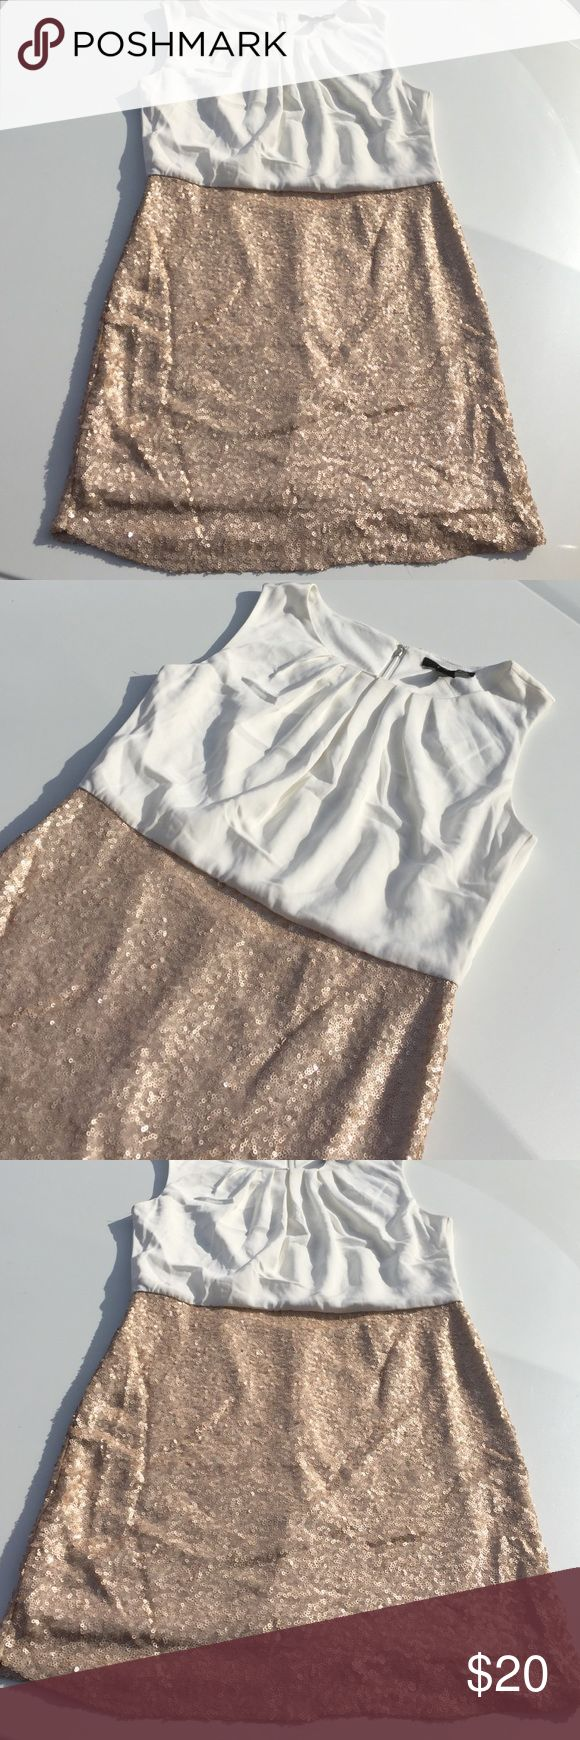 """NWT FOREVER 21 White/Nude Sequin Dress Brand new. Tag attached. Color: Ivory up top & nude/blush sequins on bottom. Tag says item color is """"Ivory/Taupe"""". White inside lining. Size: Medium. Zip closure on back down middle. 100% polyester. *Pls take note 📝 this IS a Forever 21 dress. Some imperfections are to be expected from this clothing line especially in hem lines and stitching. While it's brand new it's not a perfect dress. Hem could be better and some areas of stitching. That's good ol…"""